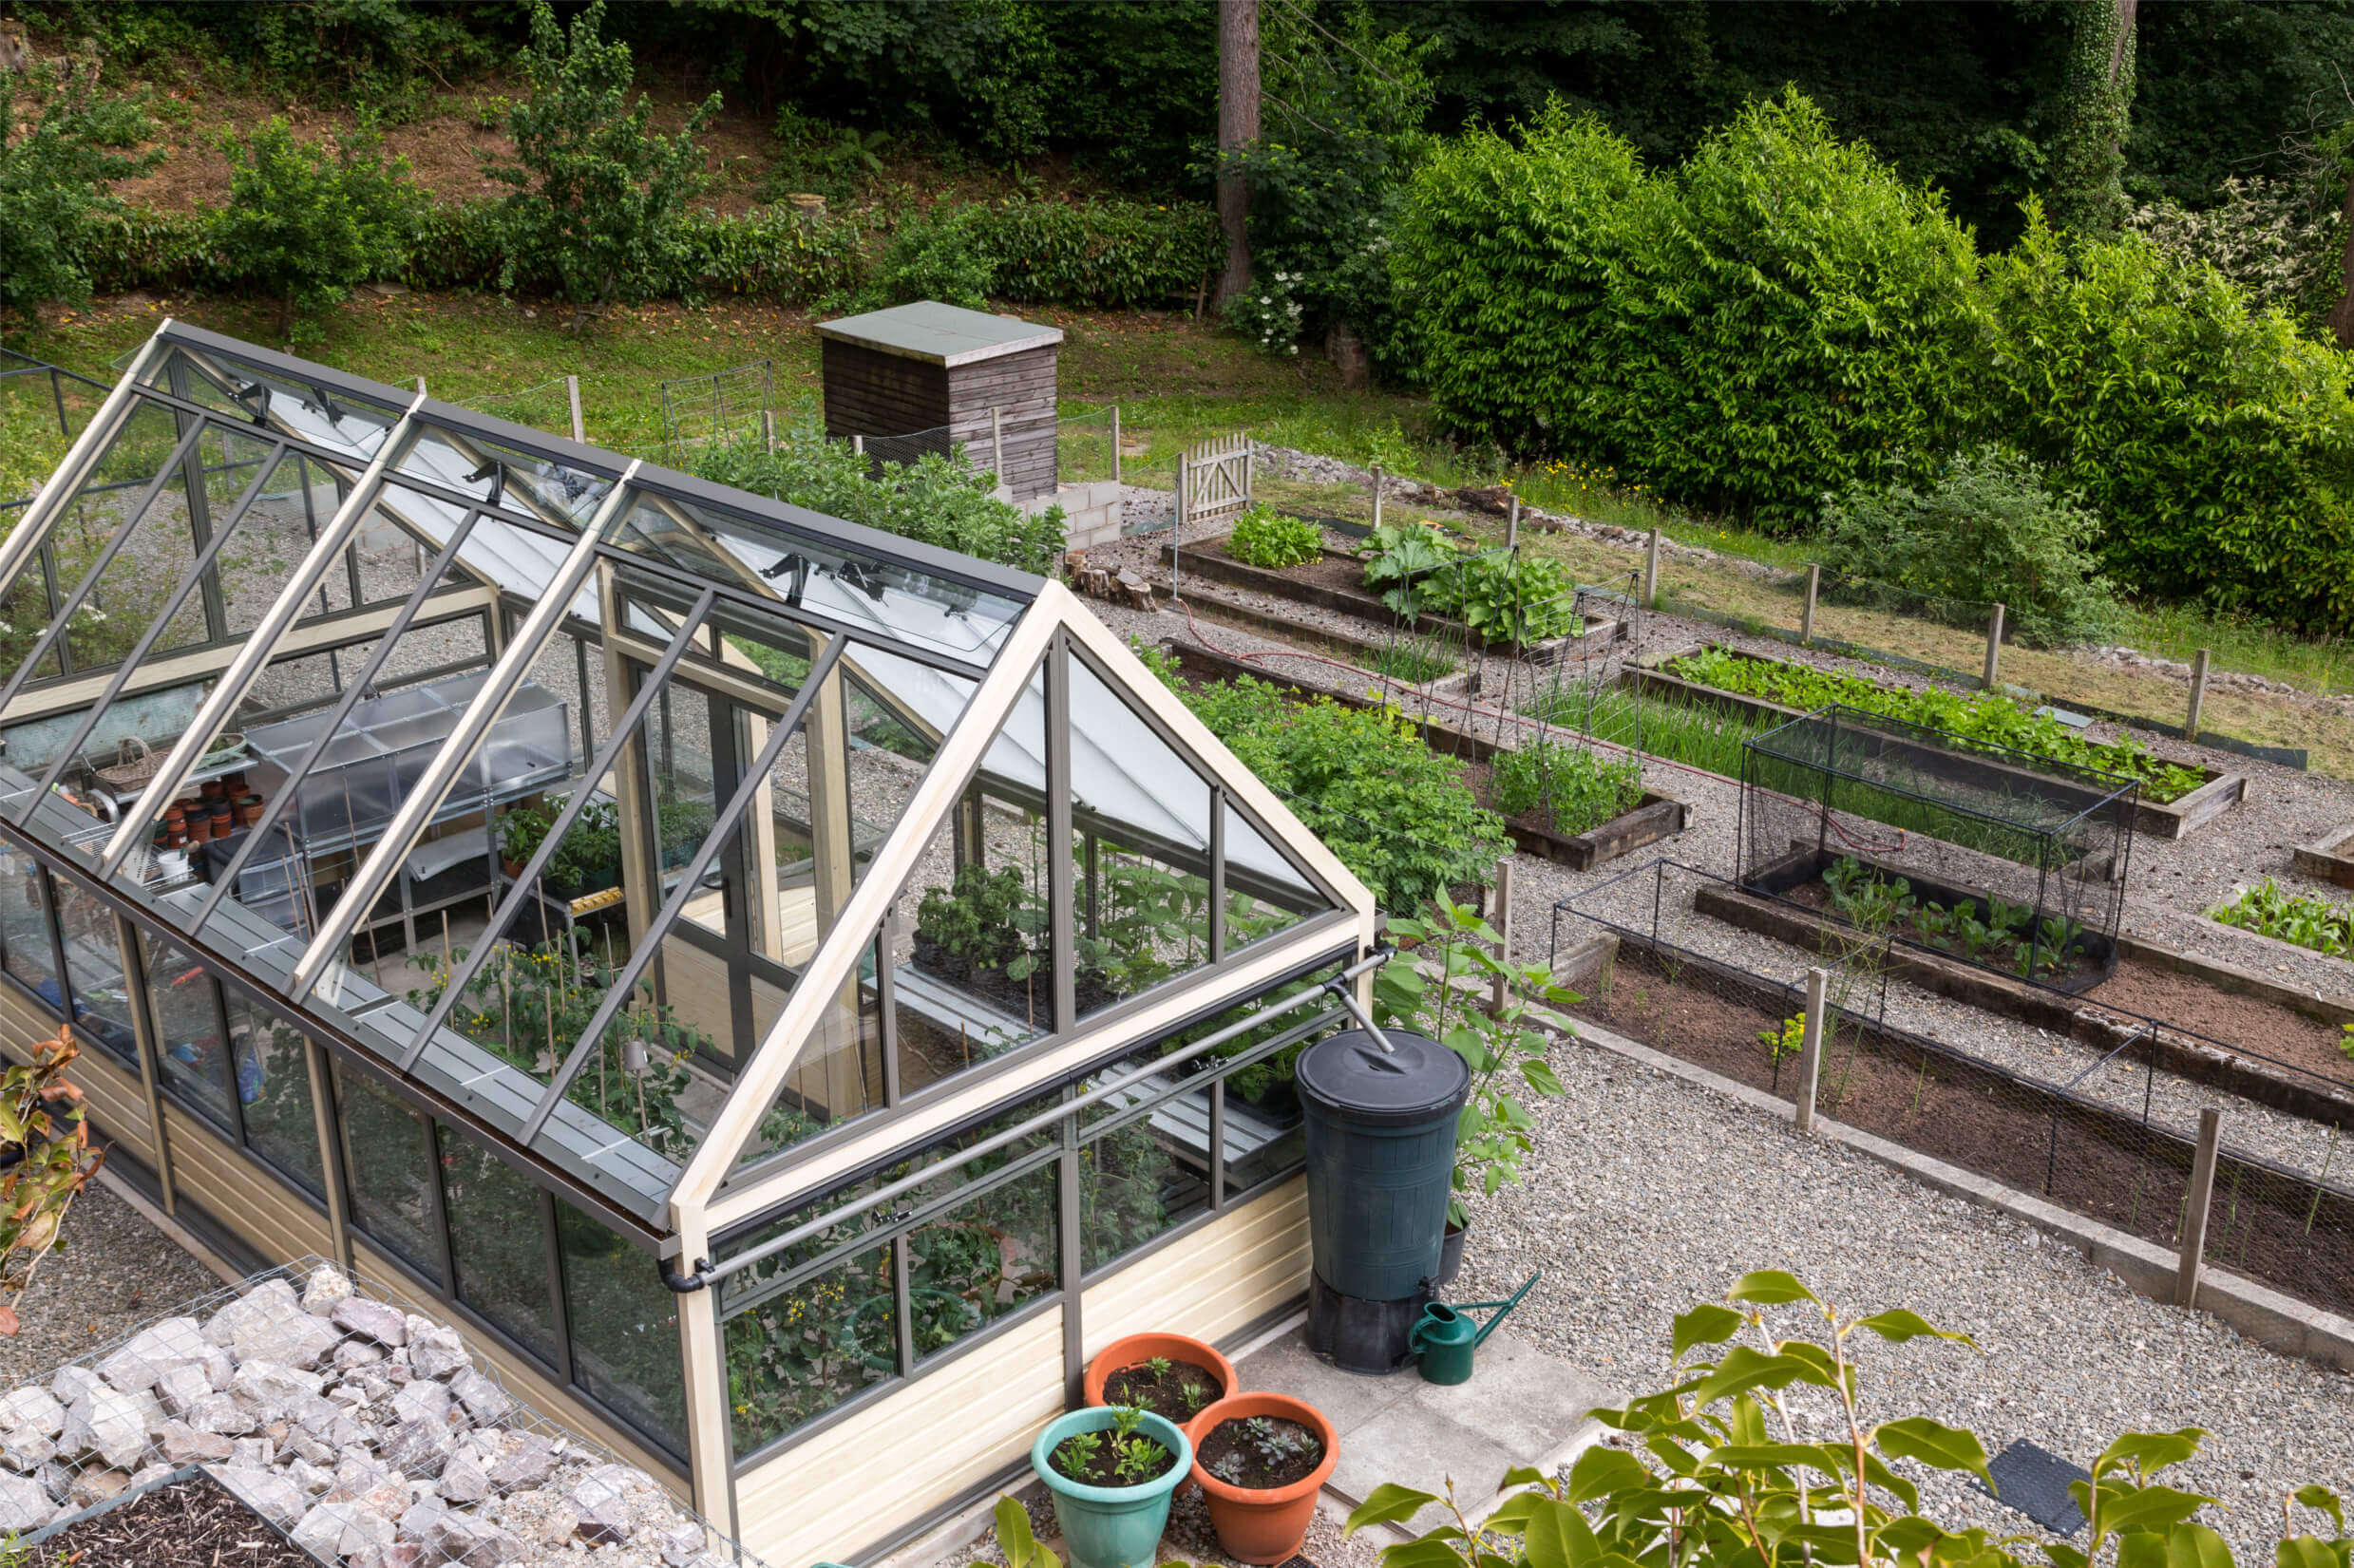 a different perspective on this alternative greenhouse design